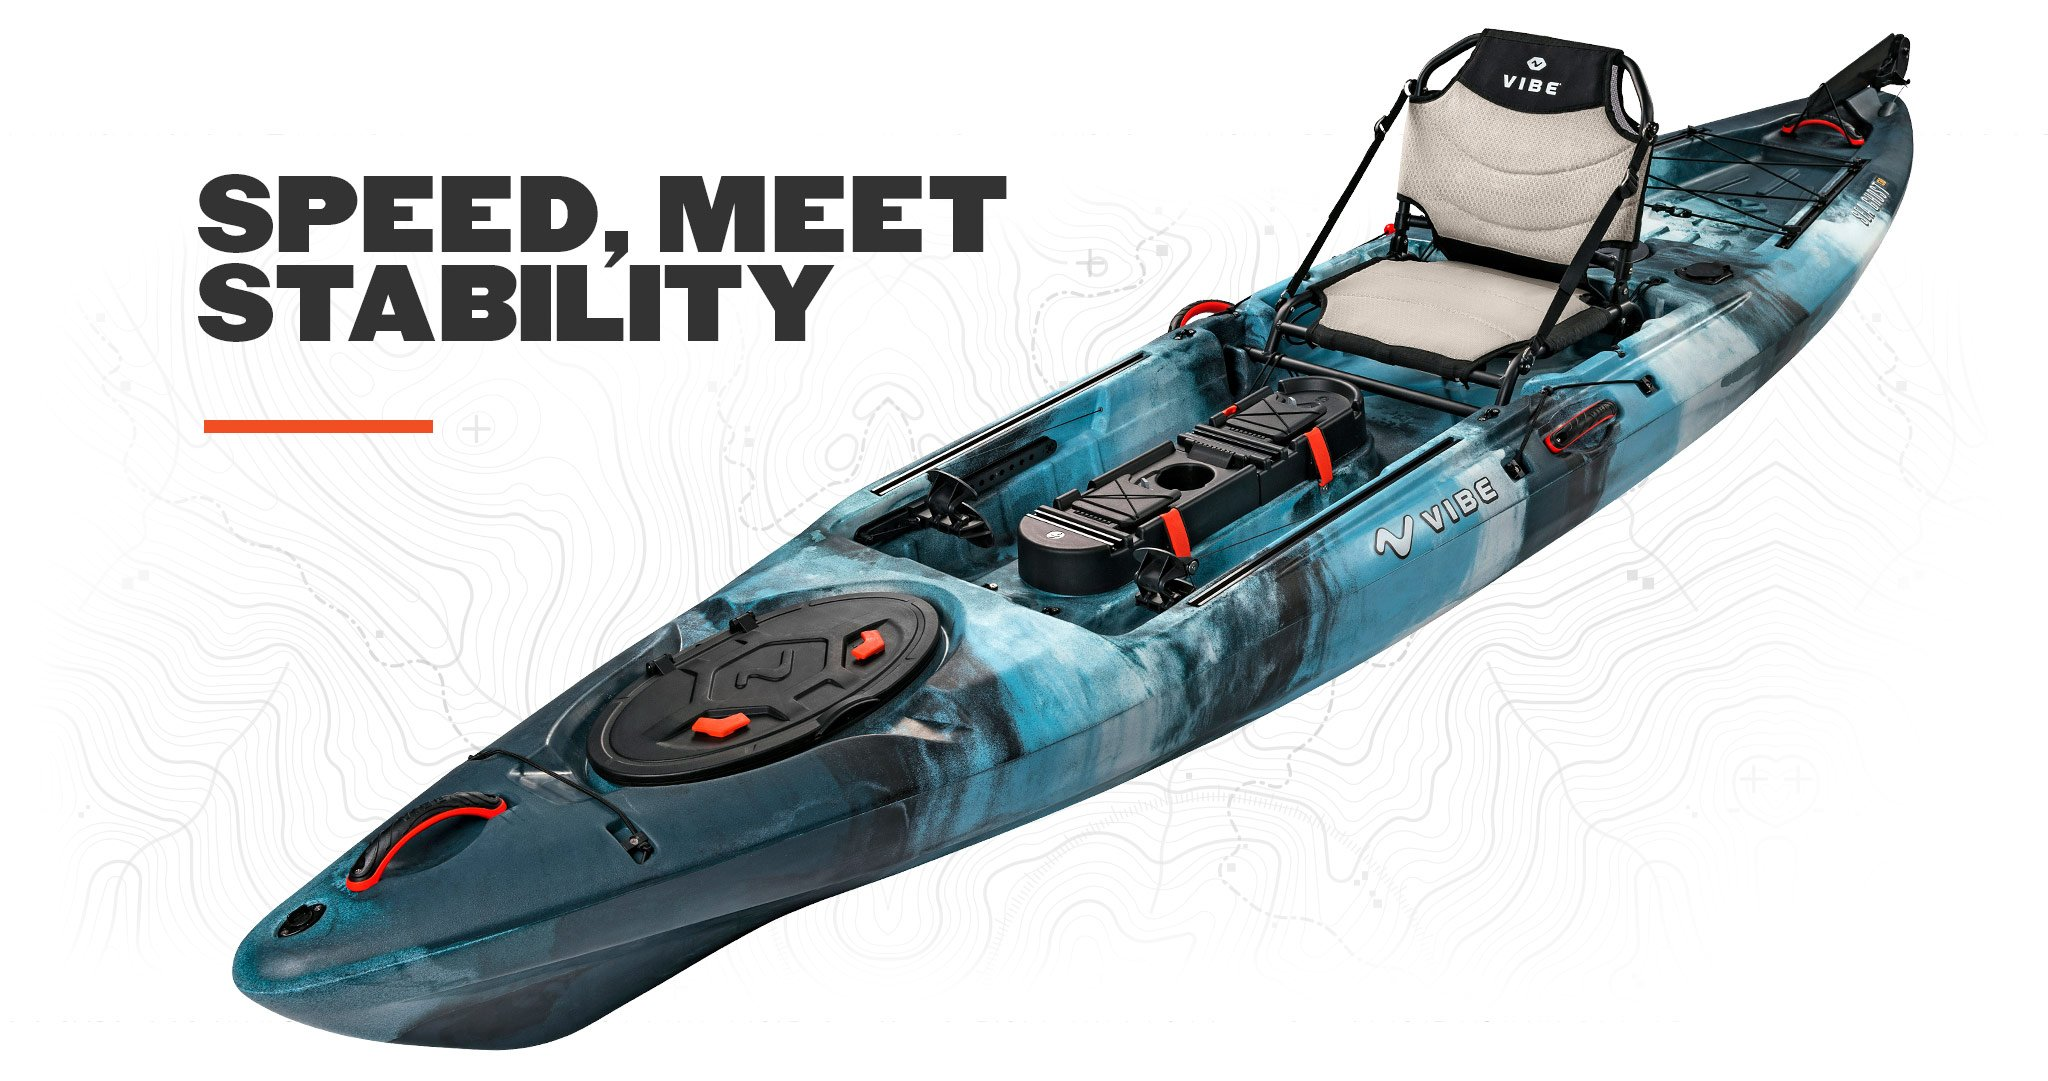 2019 Vibe Sea Ghost 130 Speed Meet Stability